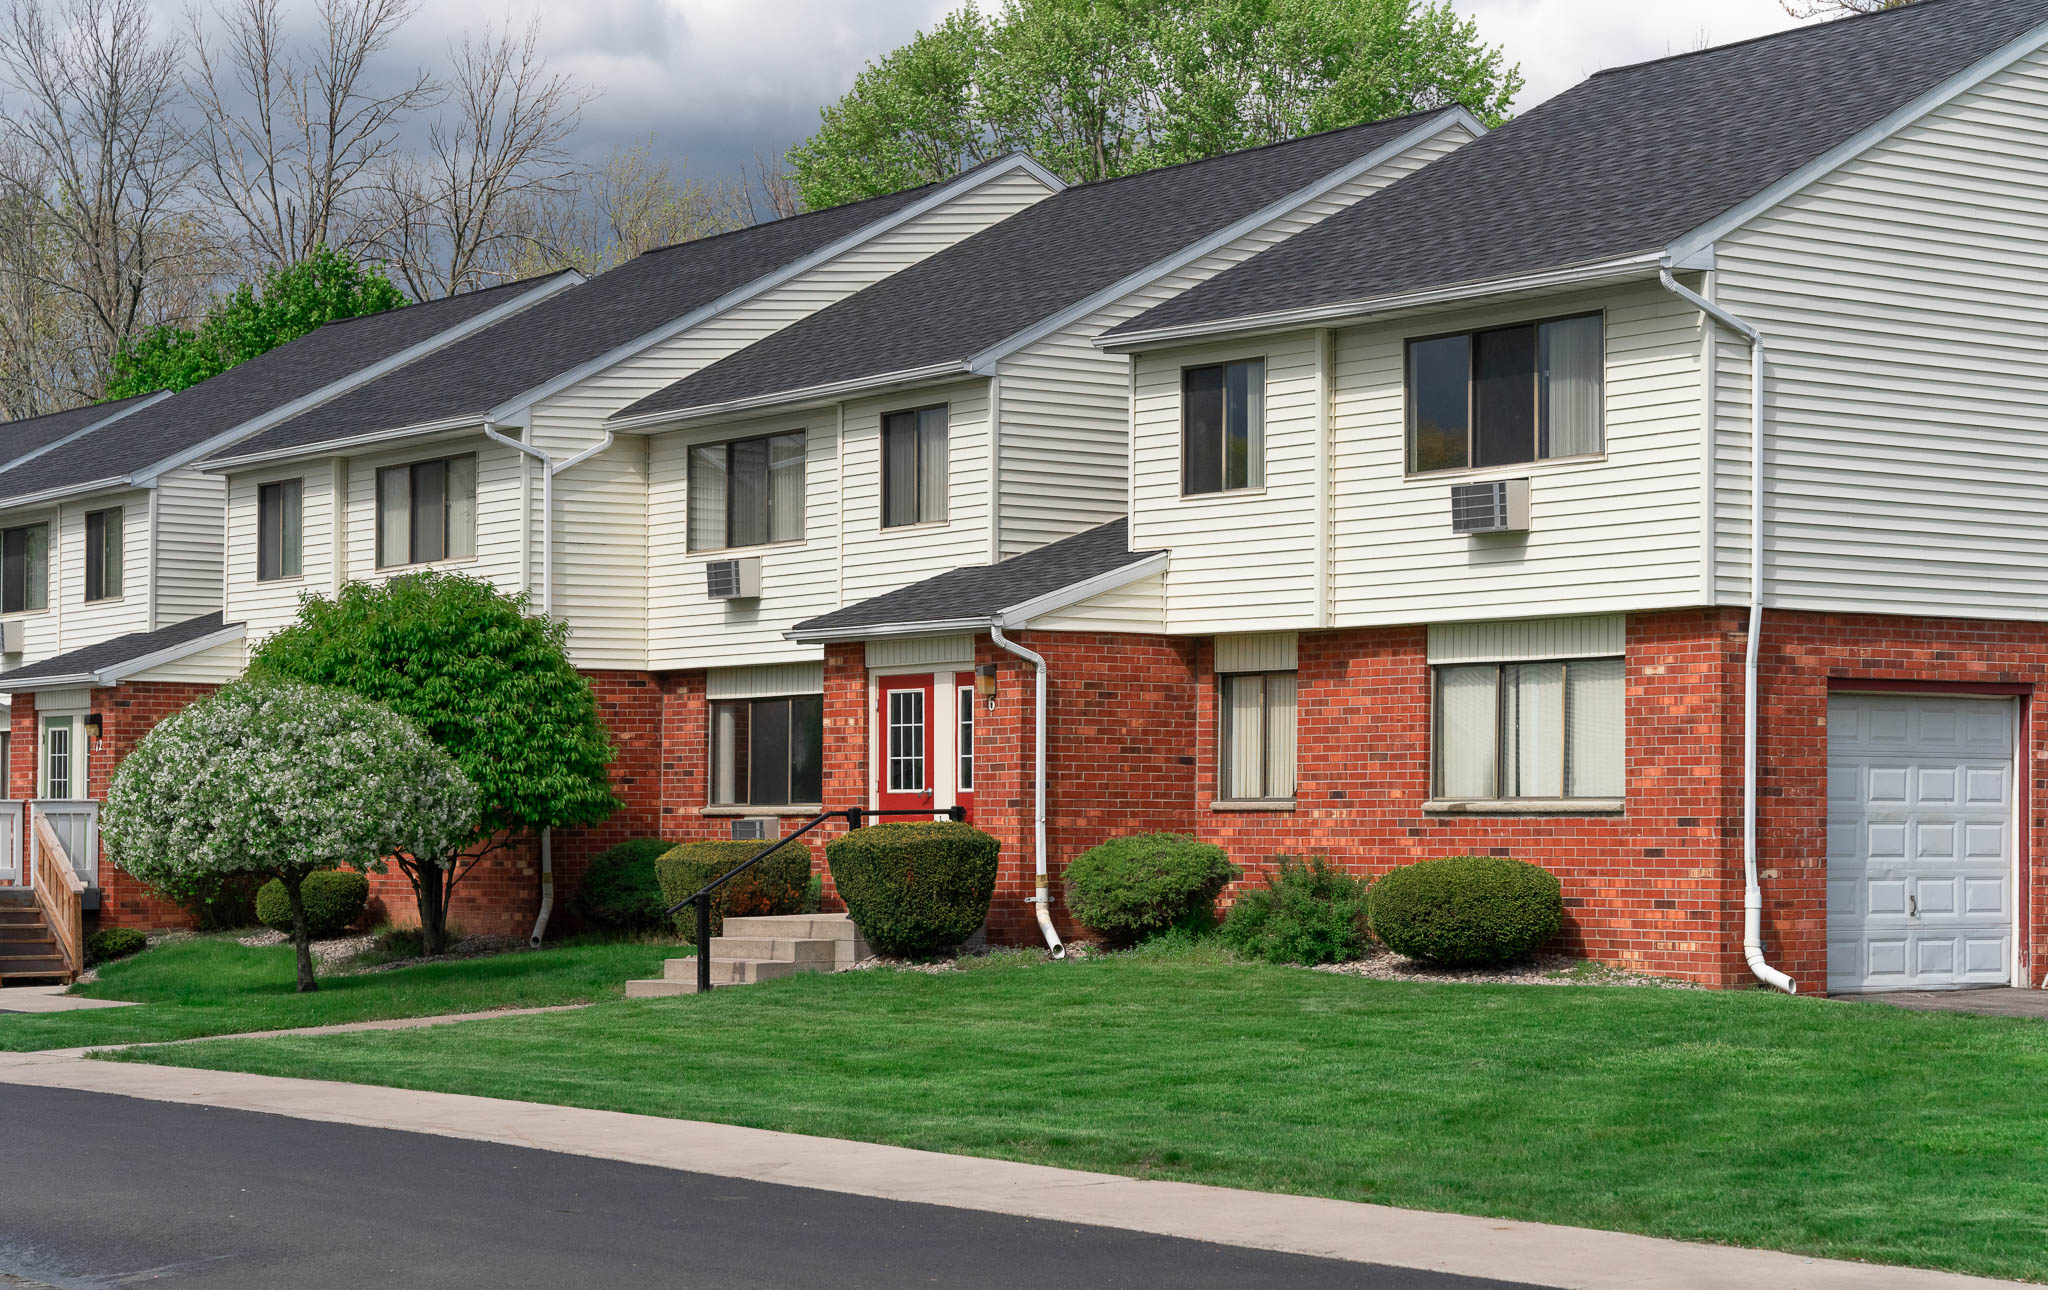 Exterior View at the Little Creek Apartments in Rochester, NY